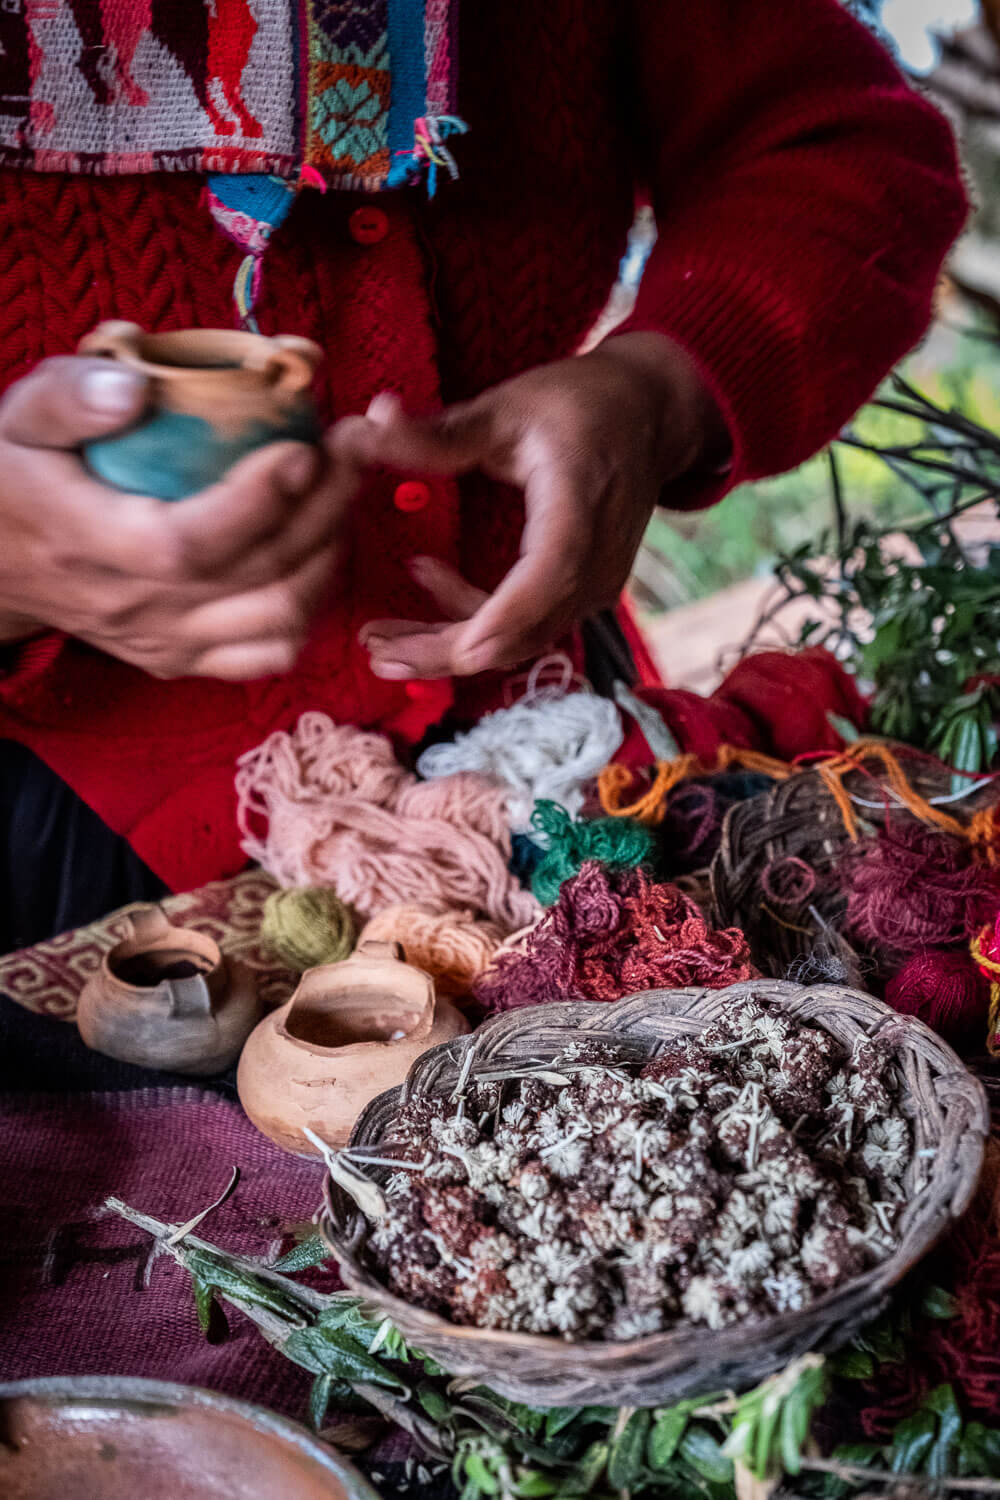 """Natural ingredients used to dye wool. The weavers of Patacancha, The Sacred Valley, Peru. Travel photography and guide by © Natasha Lequepeys for """"And Then I Met Yoko"""". #peru #sacredvalley #patacancha #photoblog #travelblog #travelphotography #portraitphotography #travelitinerary #fujifilm #weaving #tradition #culture #people #andes #village #weavingdemonstration #cusco #ollantaytambo #travel #travelperu"""